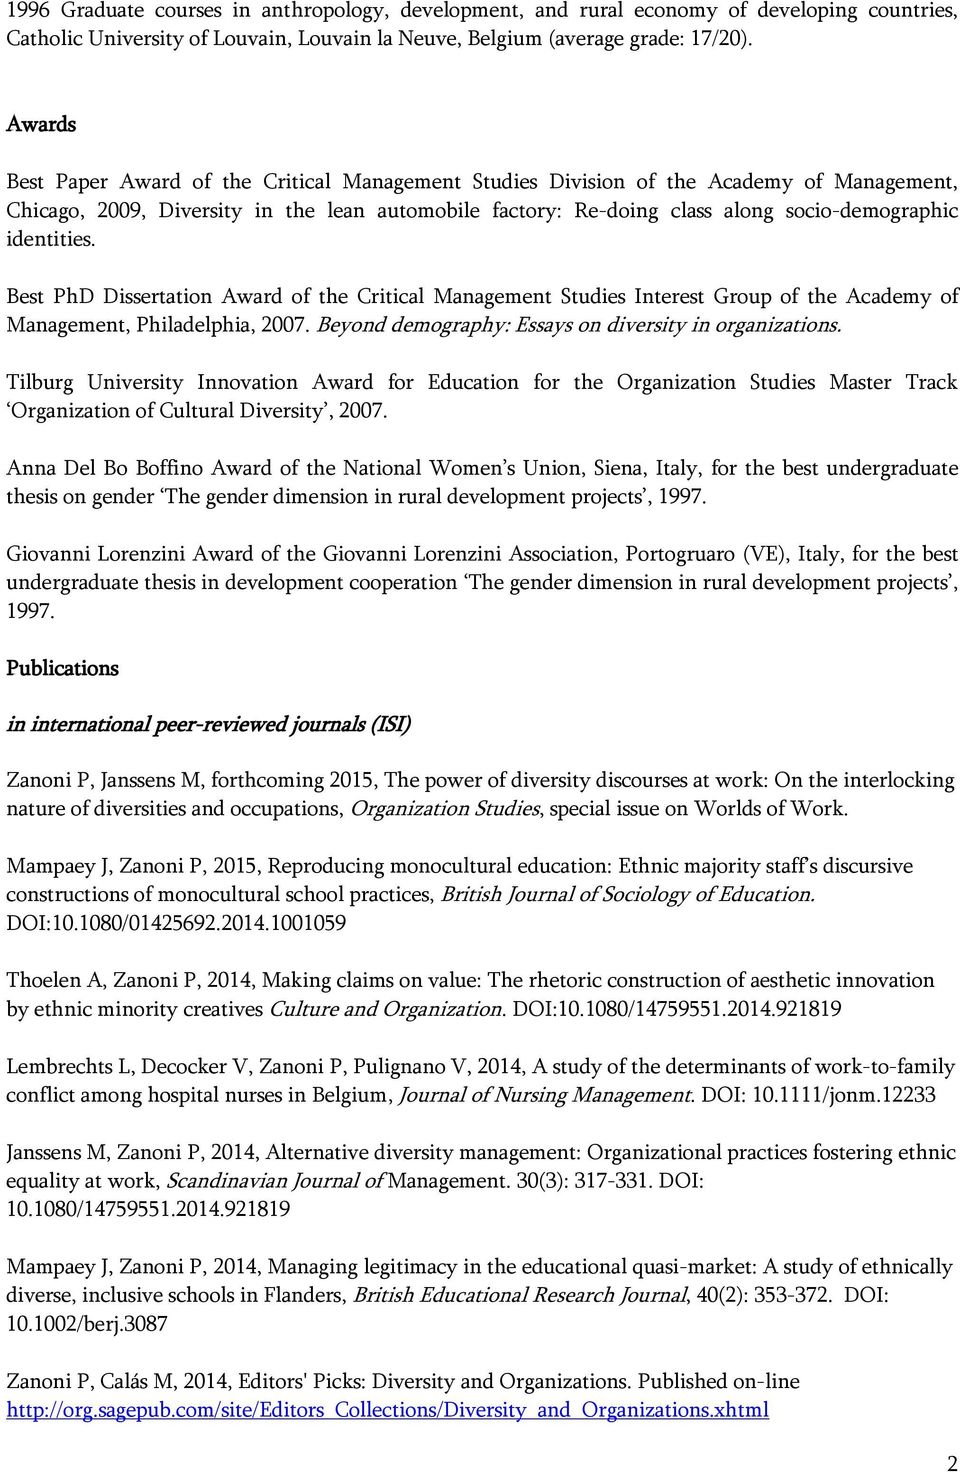 identities. Best PhD Dissertation Award of the Critical Management Studies Interest Group of the Academy of Management, Philadelphia, 2007. Beyond demography: Essays on diversity in organizations.